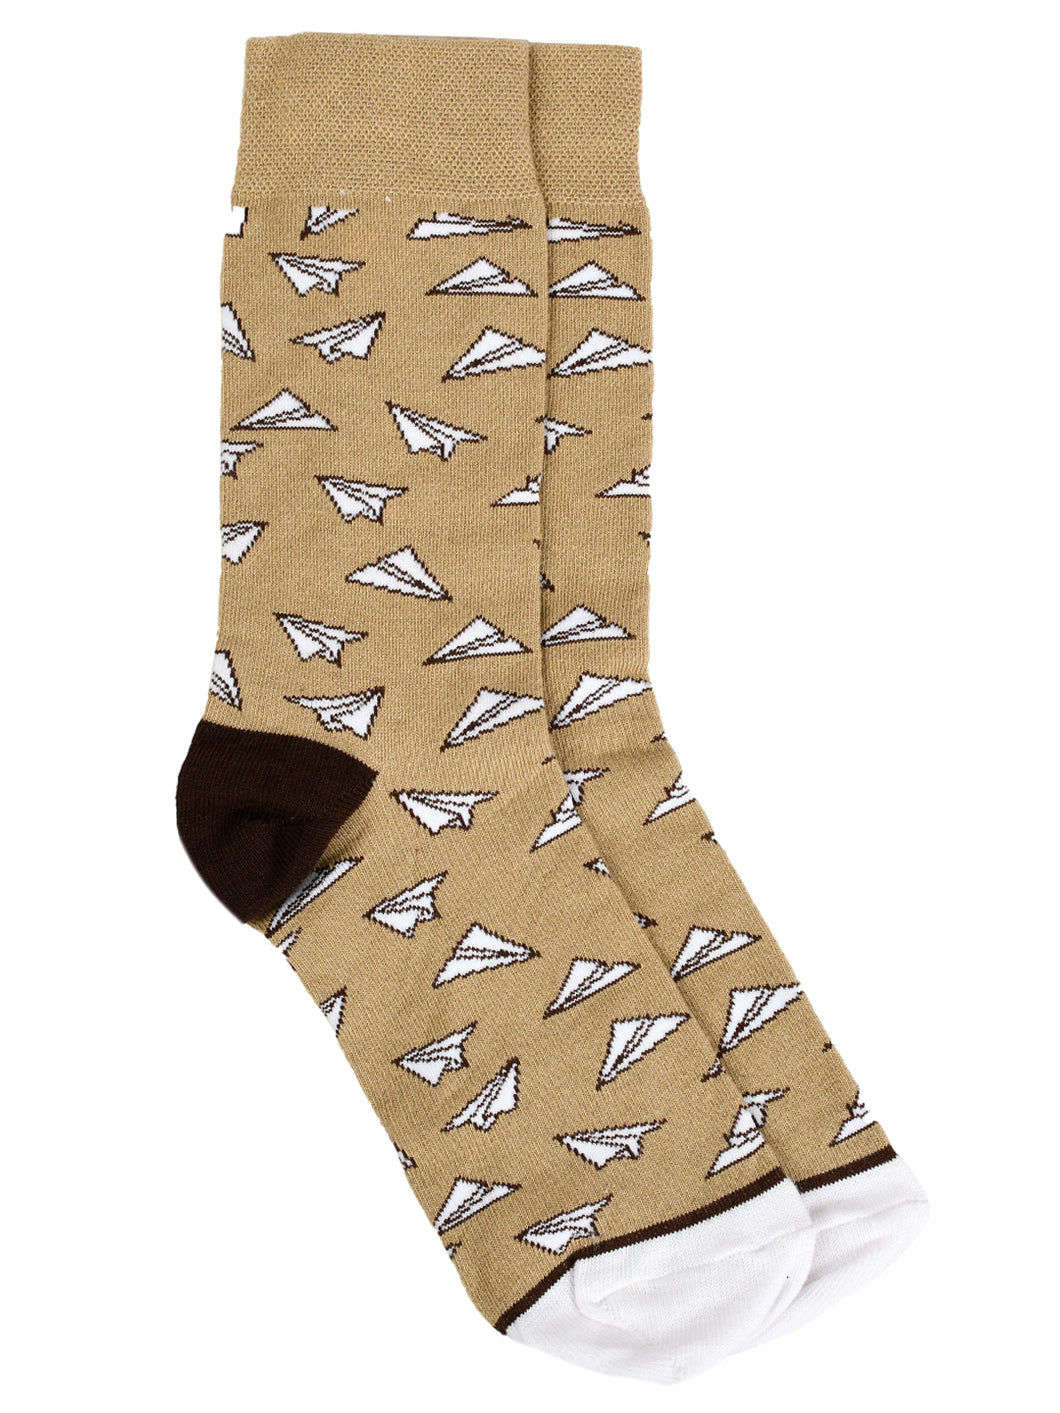 SWHF Organic Cotton Unisex Designer Socks Set (Crew Length, Palm Tree-1)